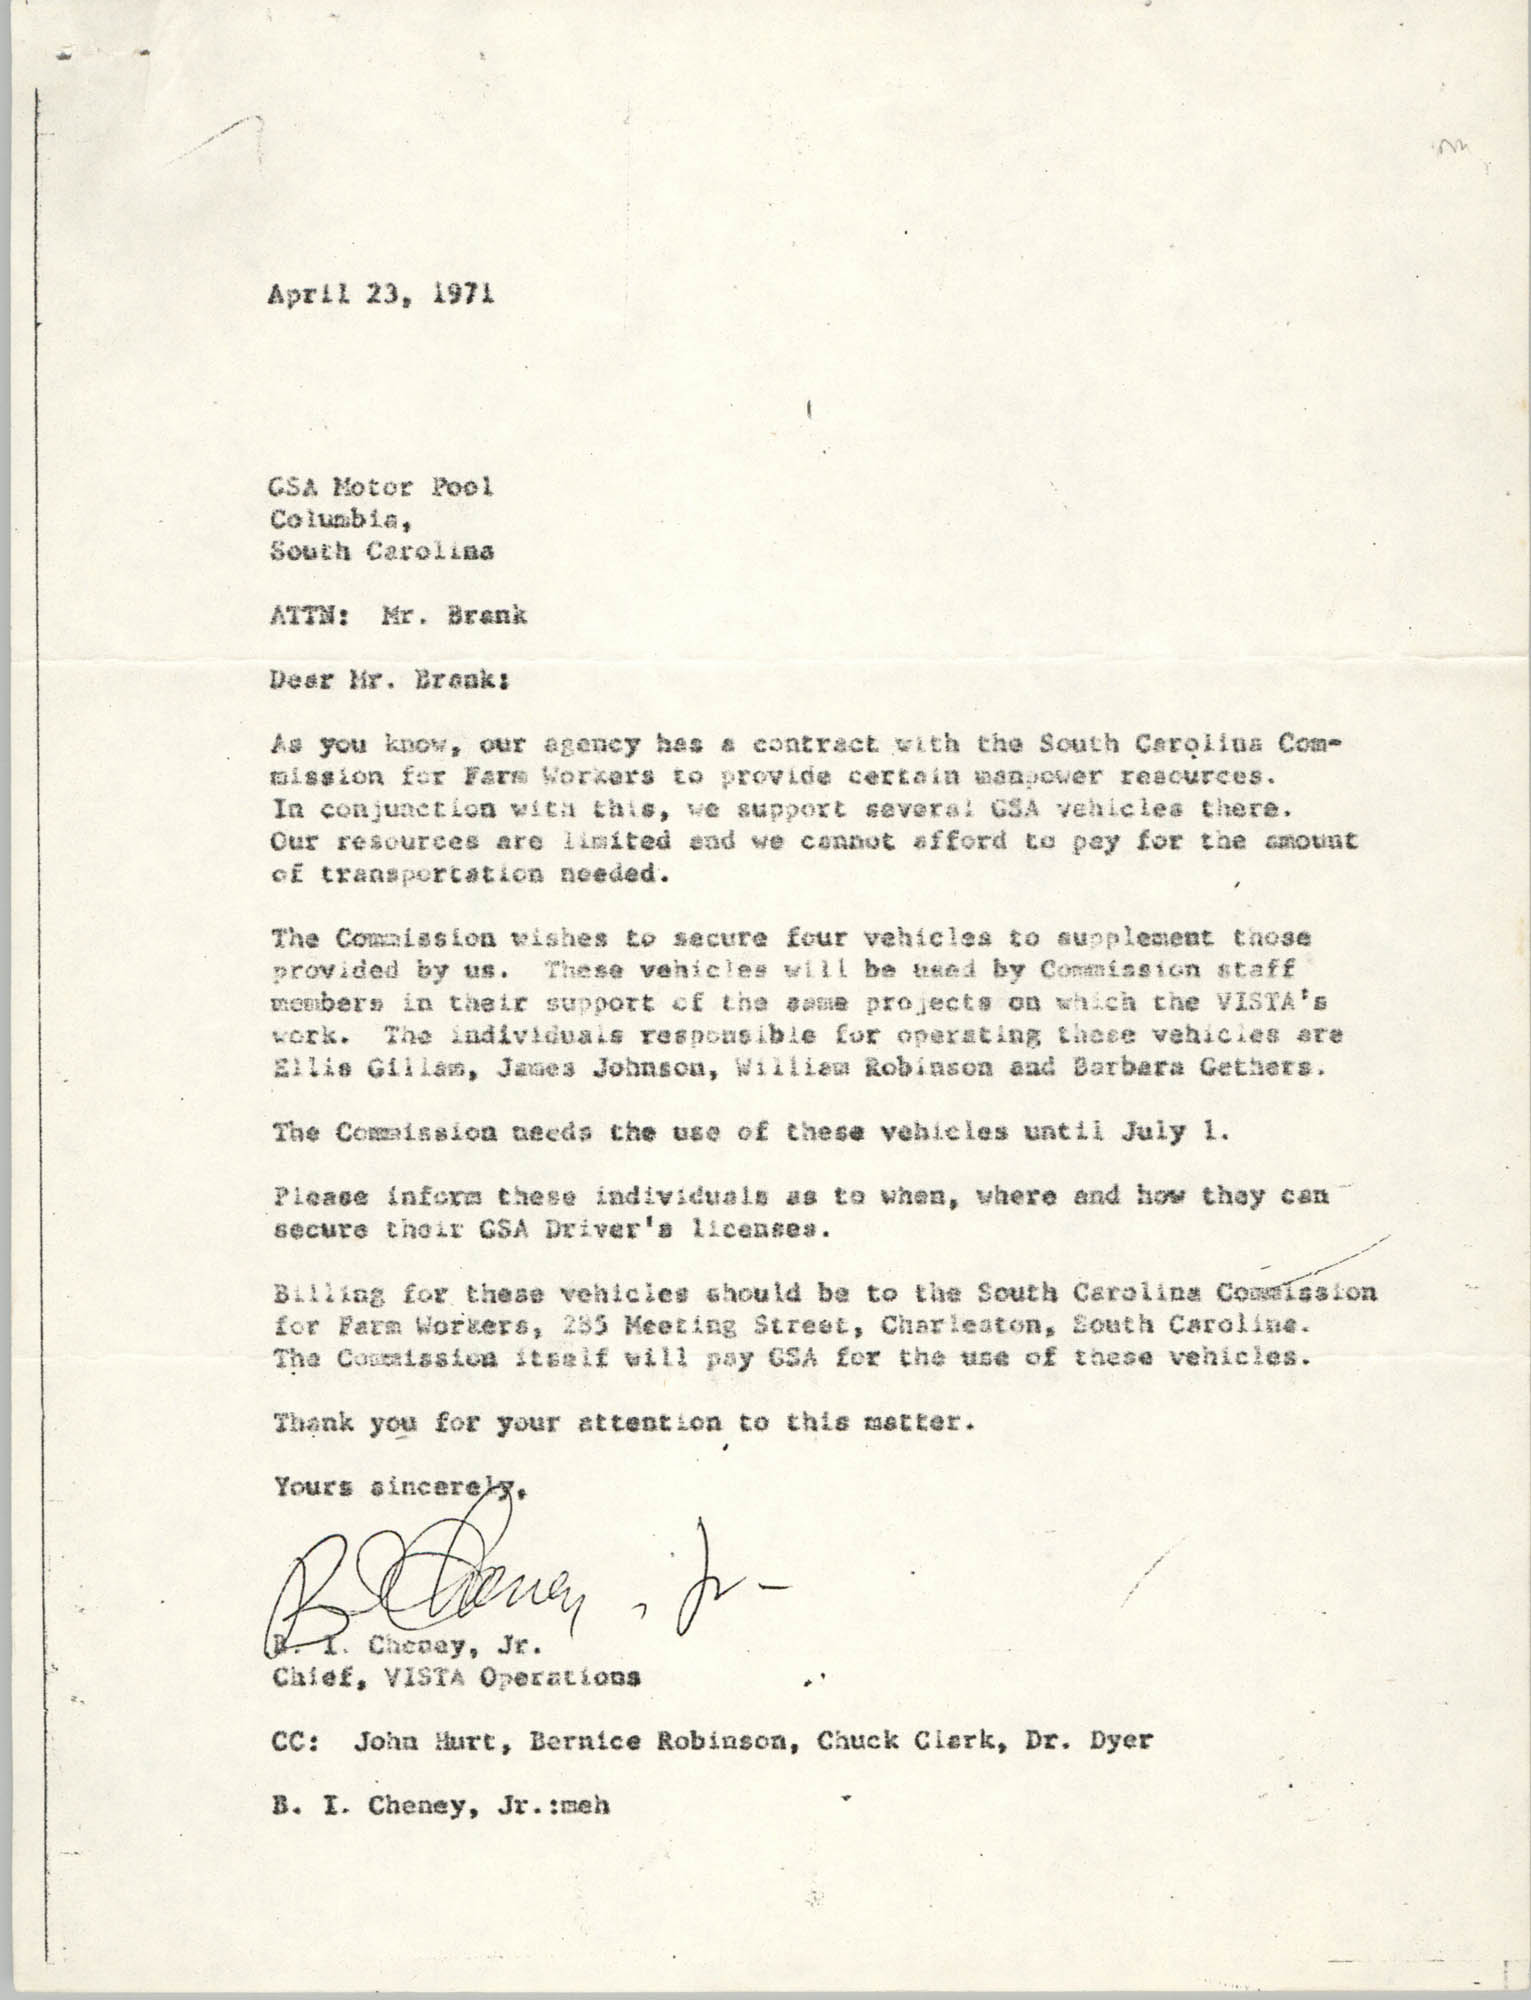 Letter from B. I. Cheney, Jr. to GSA Motor Pool, April 23, 1971